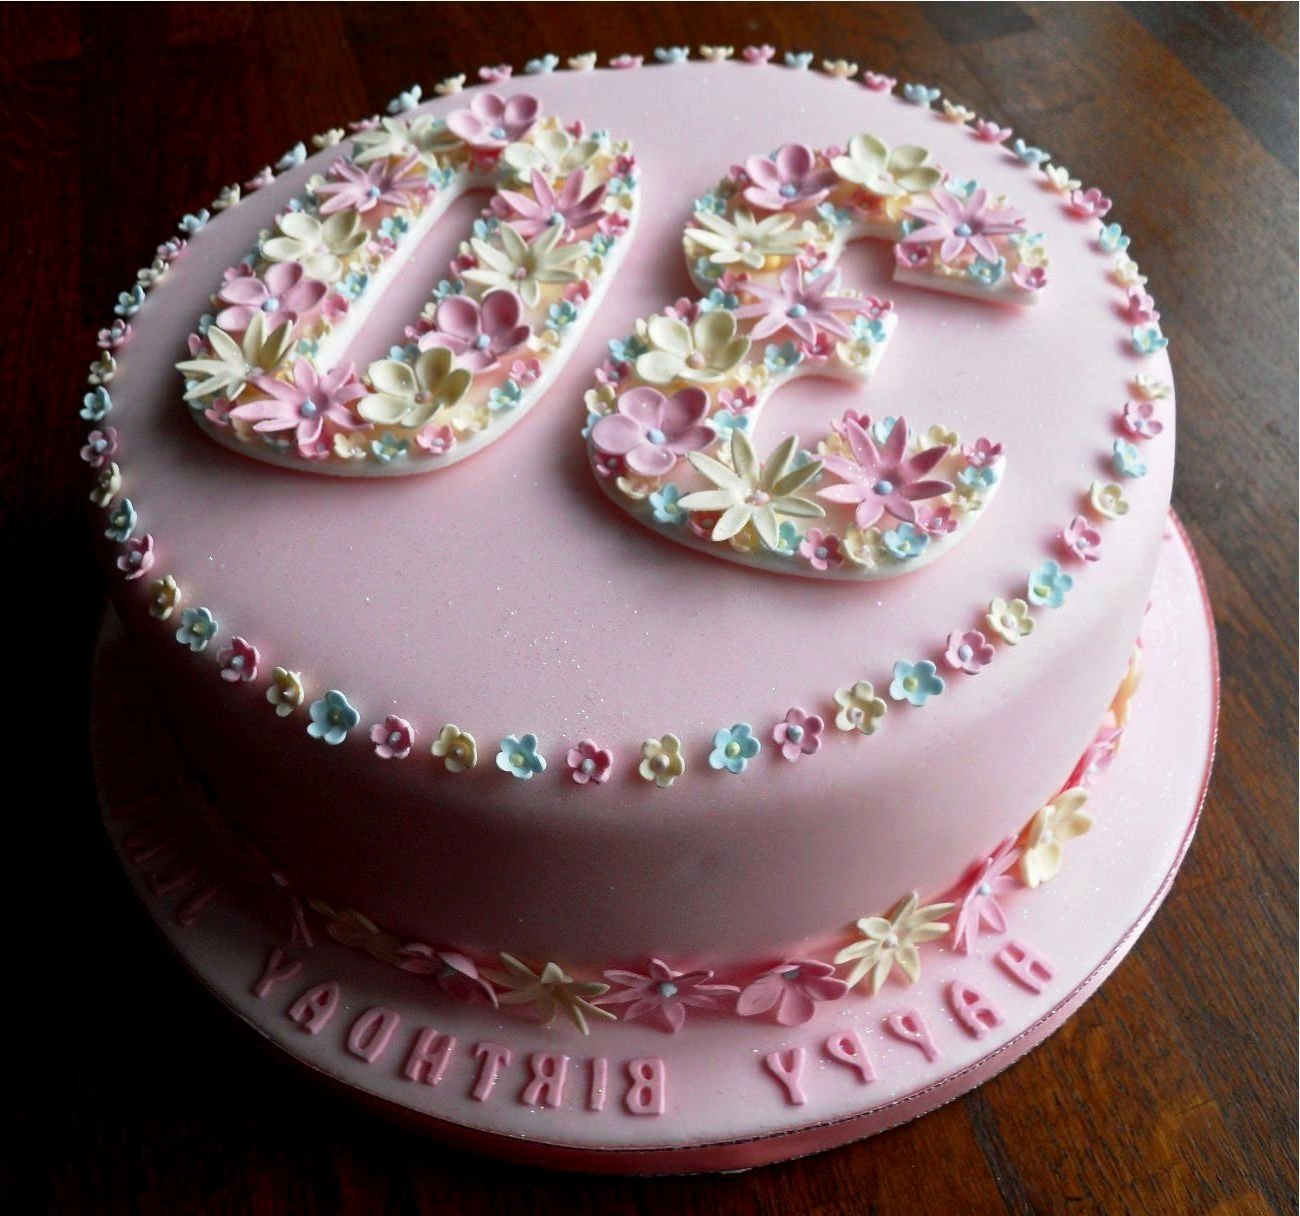 10 Gorgeous Birthday Cake Decorating Ideas For Adults birthday cake decorating ideas for adults decorating of party 2020